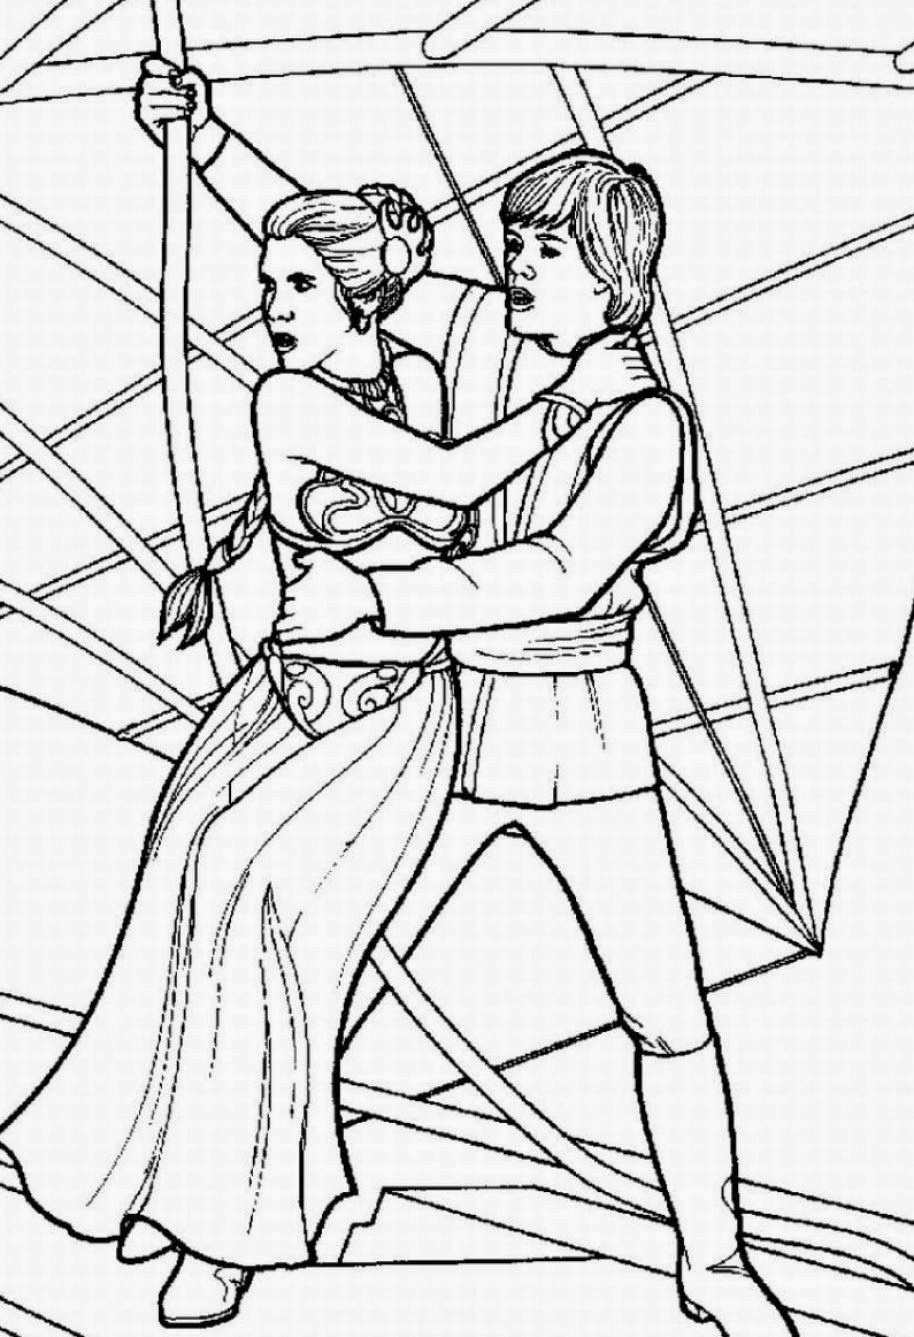 star wars coloring pages printable free star wars printable coloring pages bb 8 c2 b5 printable coloring pages star wars